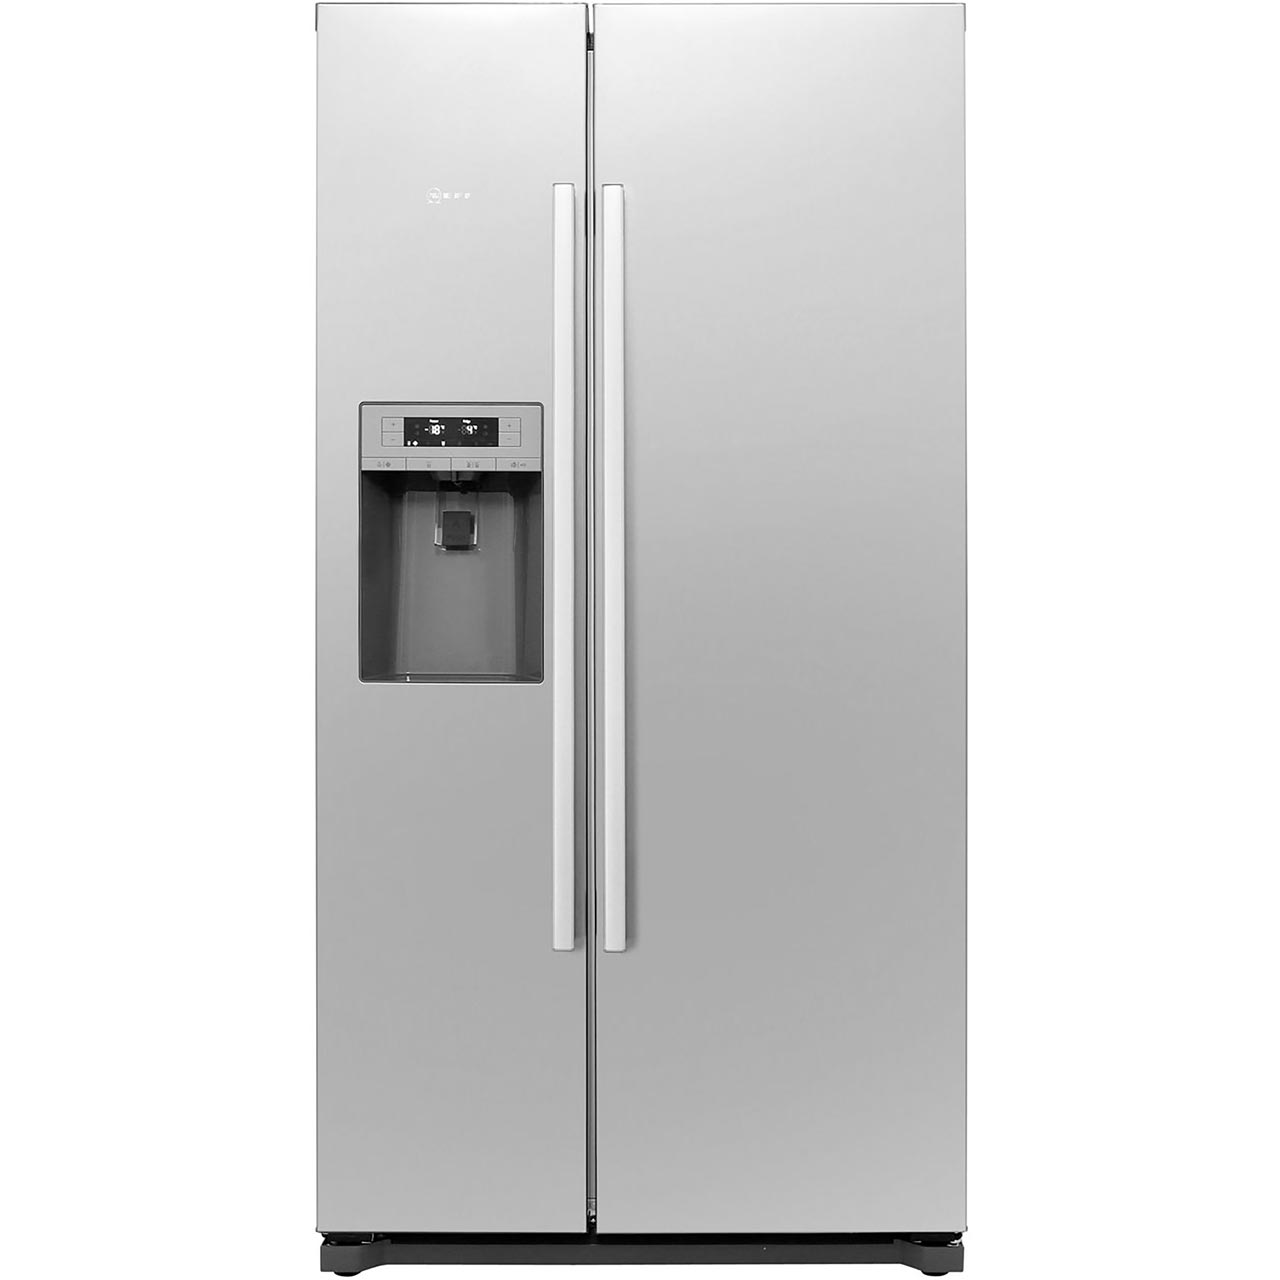 Neff Ka3902i20g American Fridge Freezer Stainless Steel